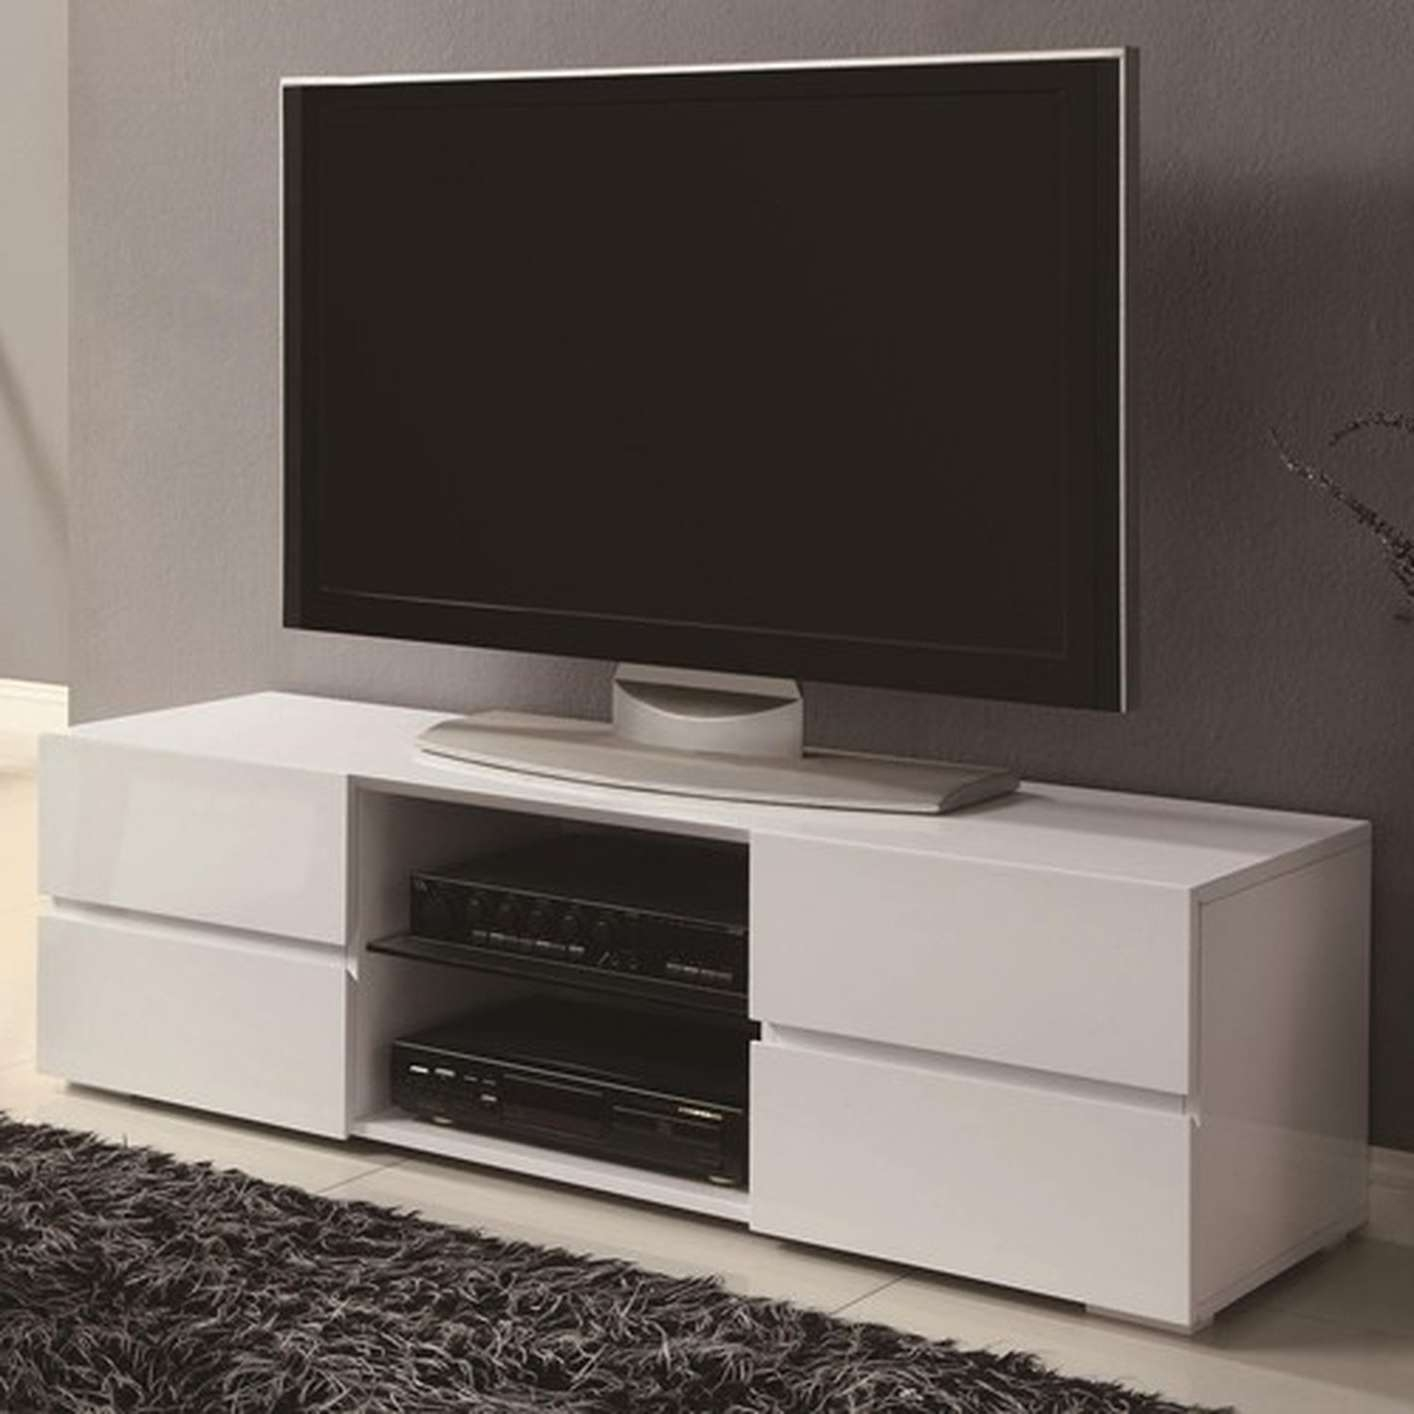 White Tv Stand 60White Tv Stands Furniture Tags : 49 Astounding Pertaining To Cheap White Tv Stands (View 20 of 20)